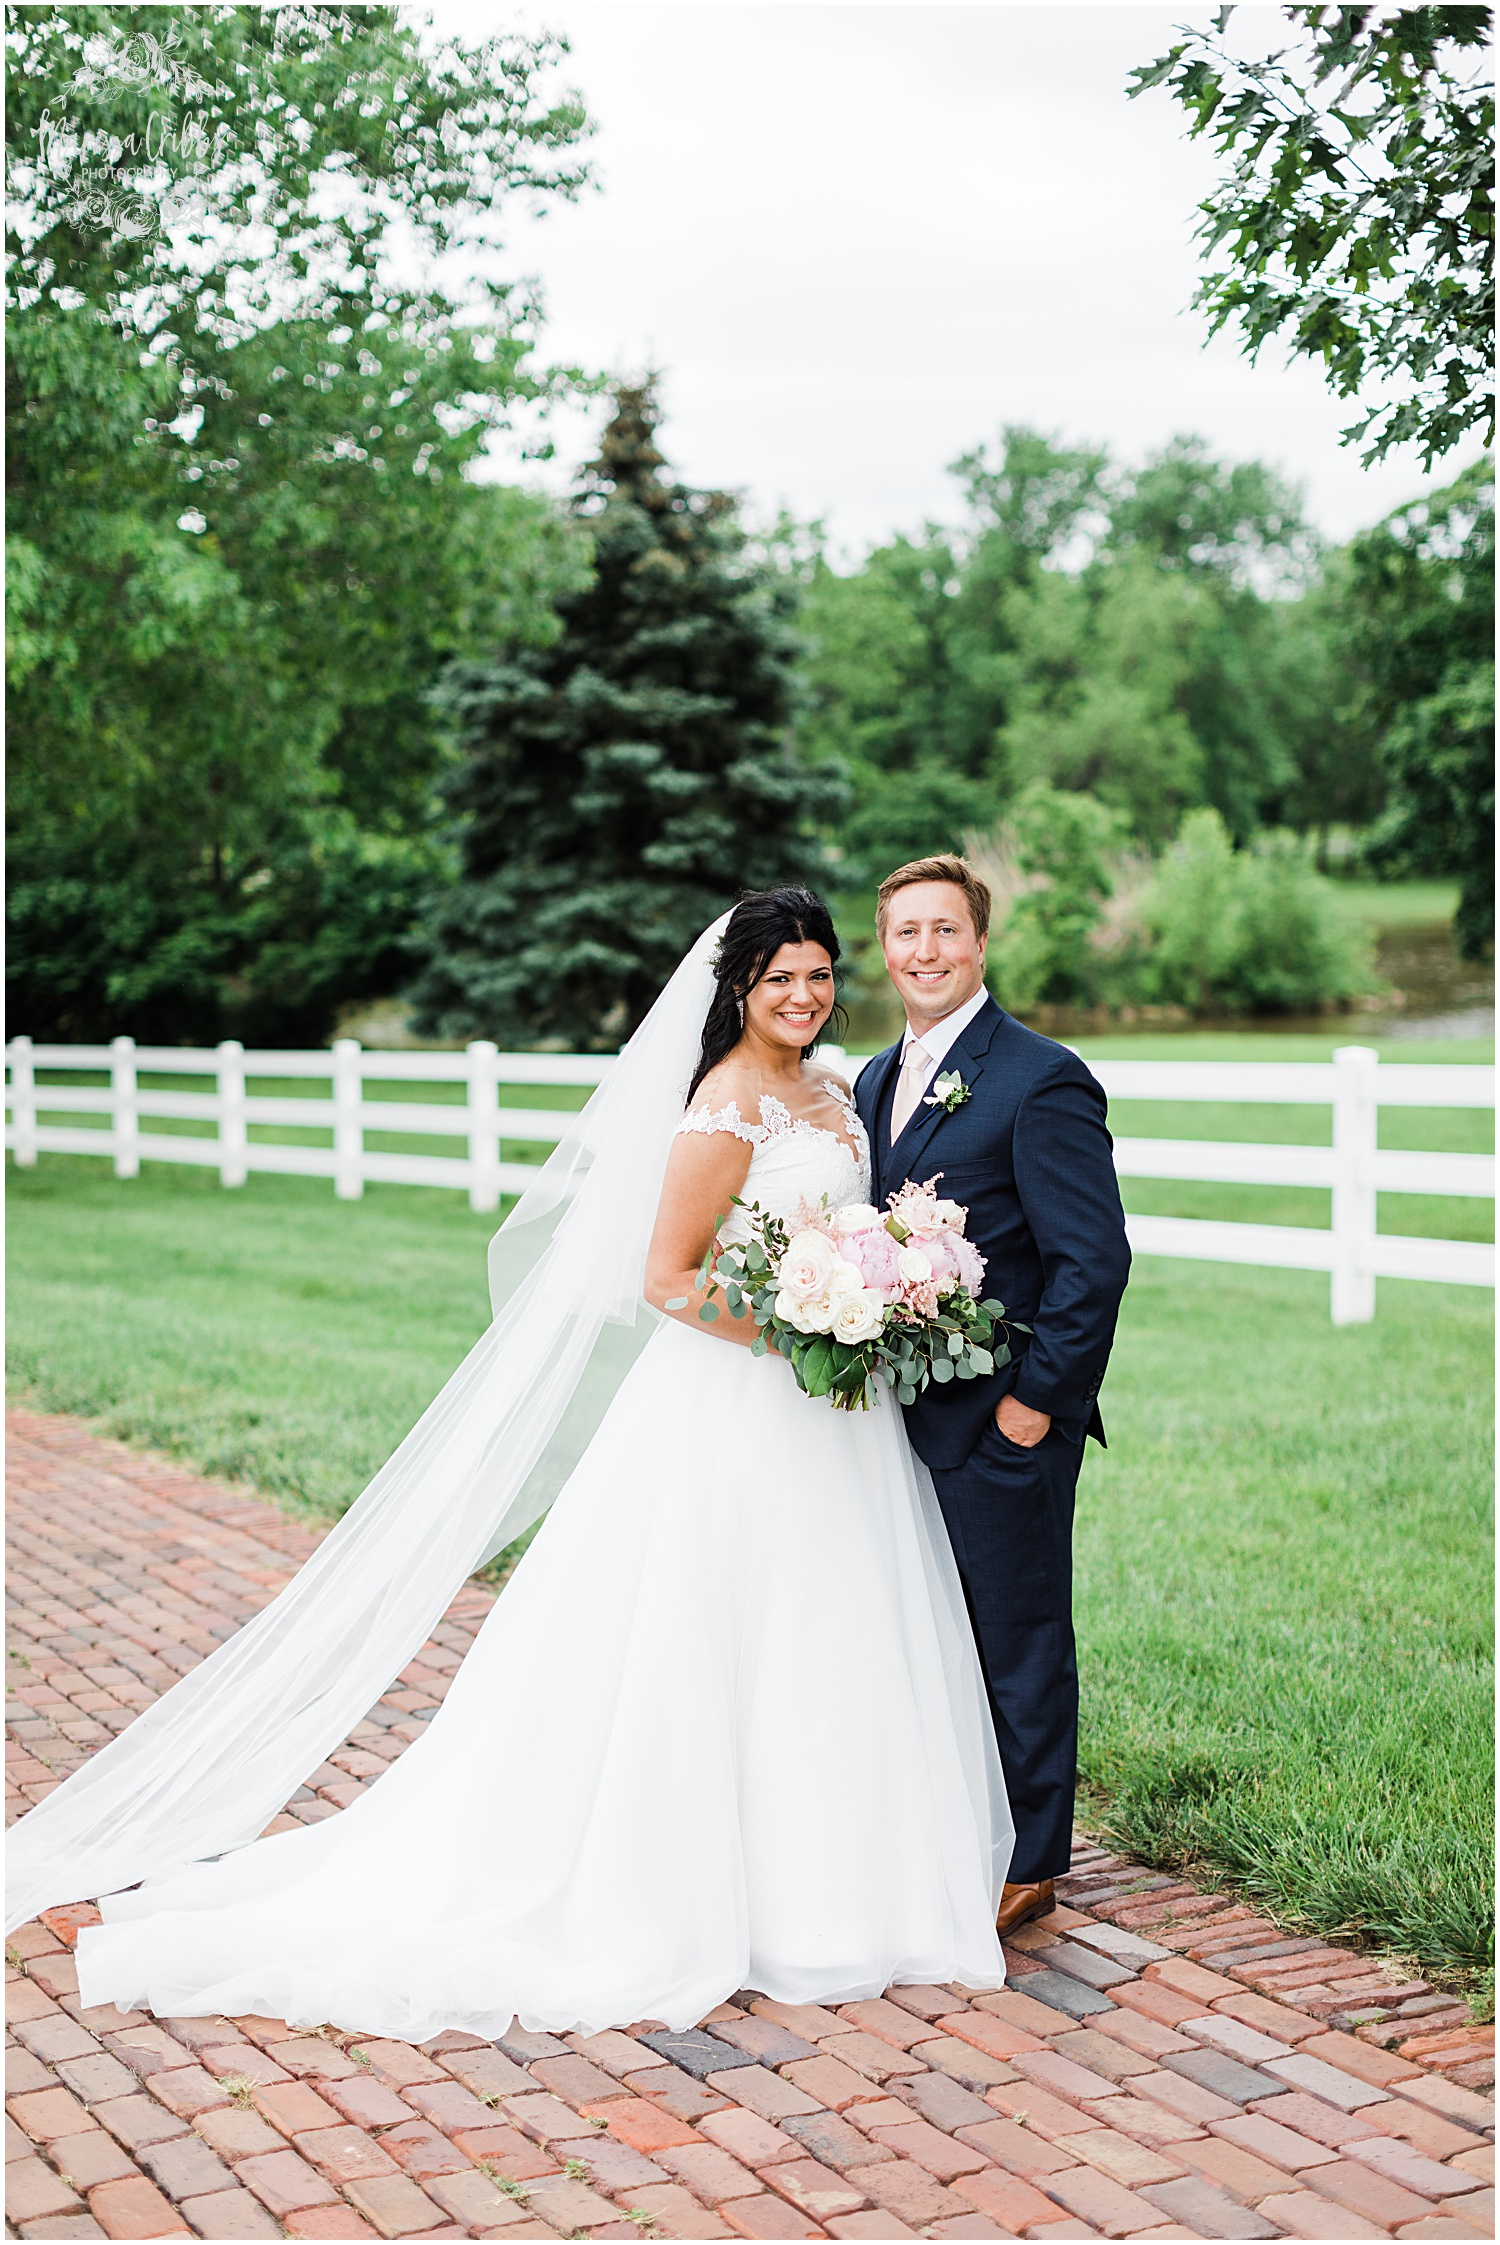 CASEY & GOLDIE MARRIED BLOG | MARISSA CRIBBS PHOTOGRAPHY_8029.jpg